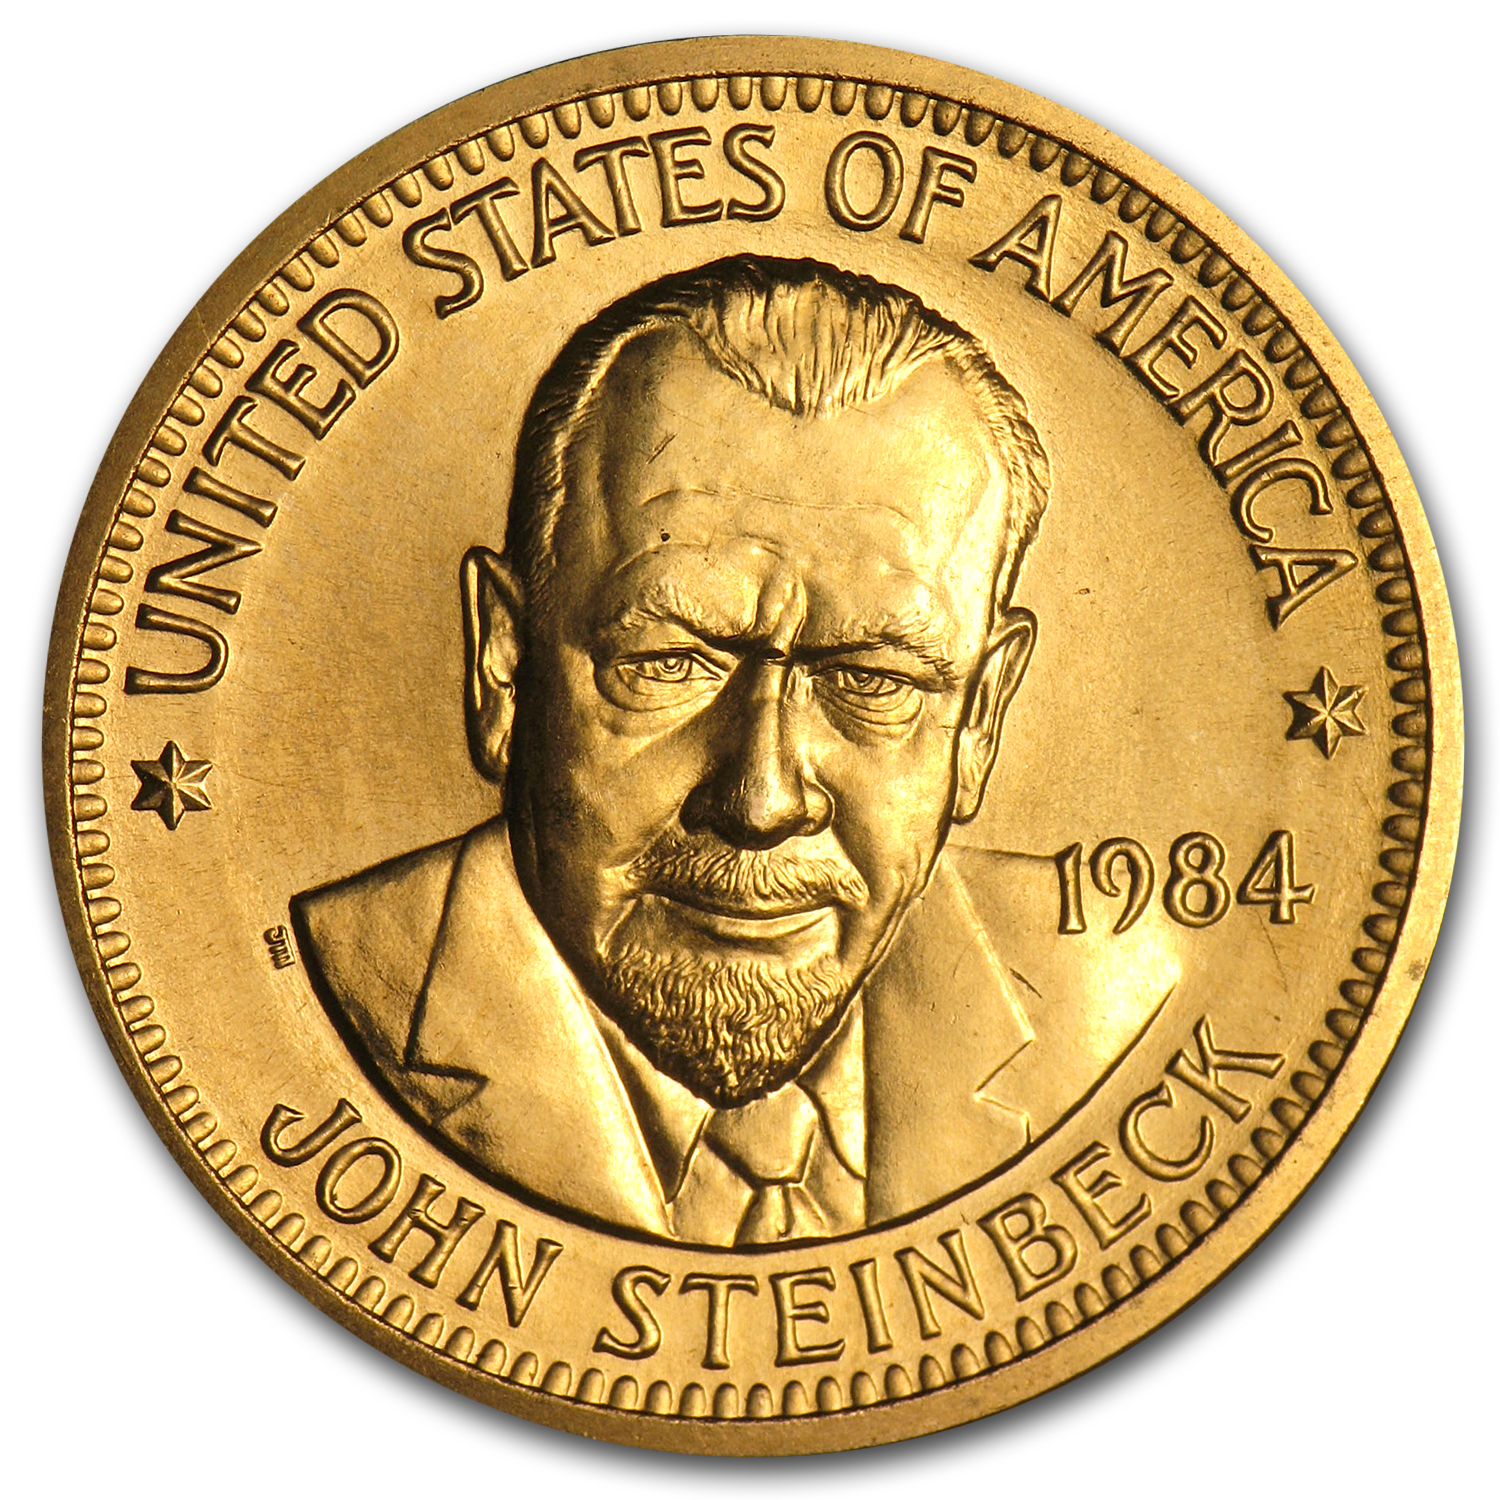 U.S. Mint 1/2 oz Gold Commemorative Arts Medal John Steinbeck